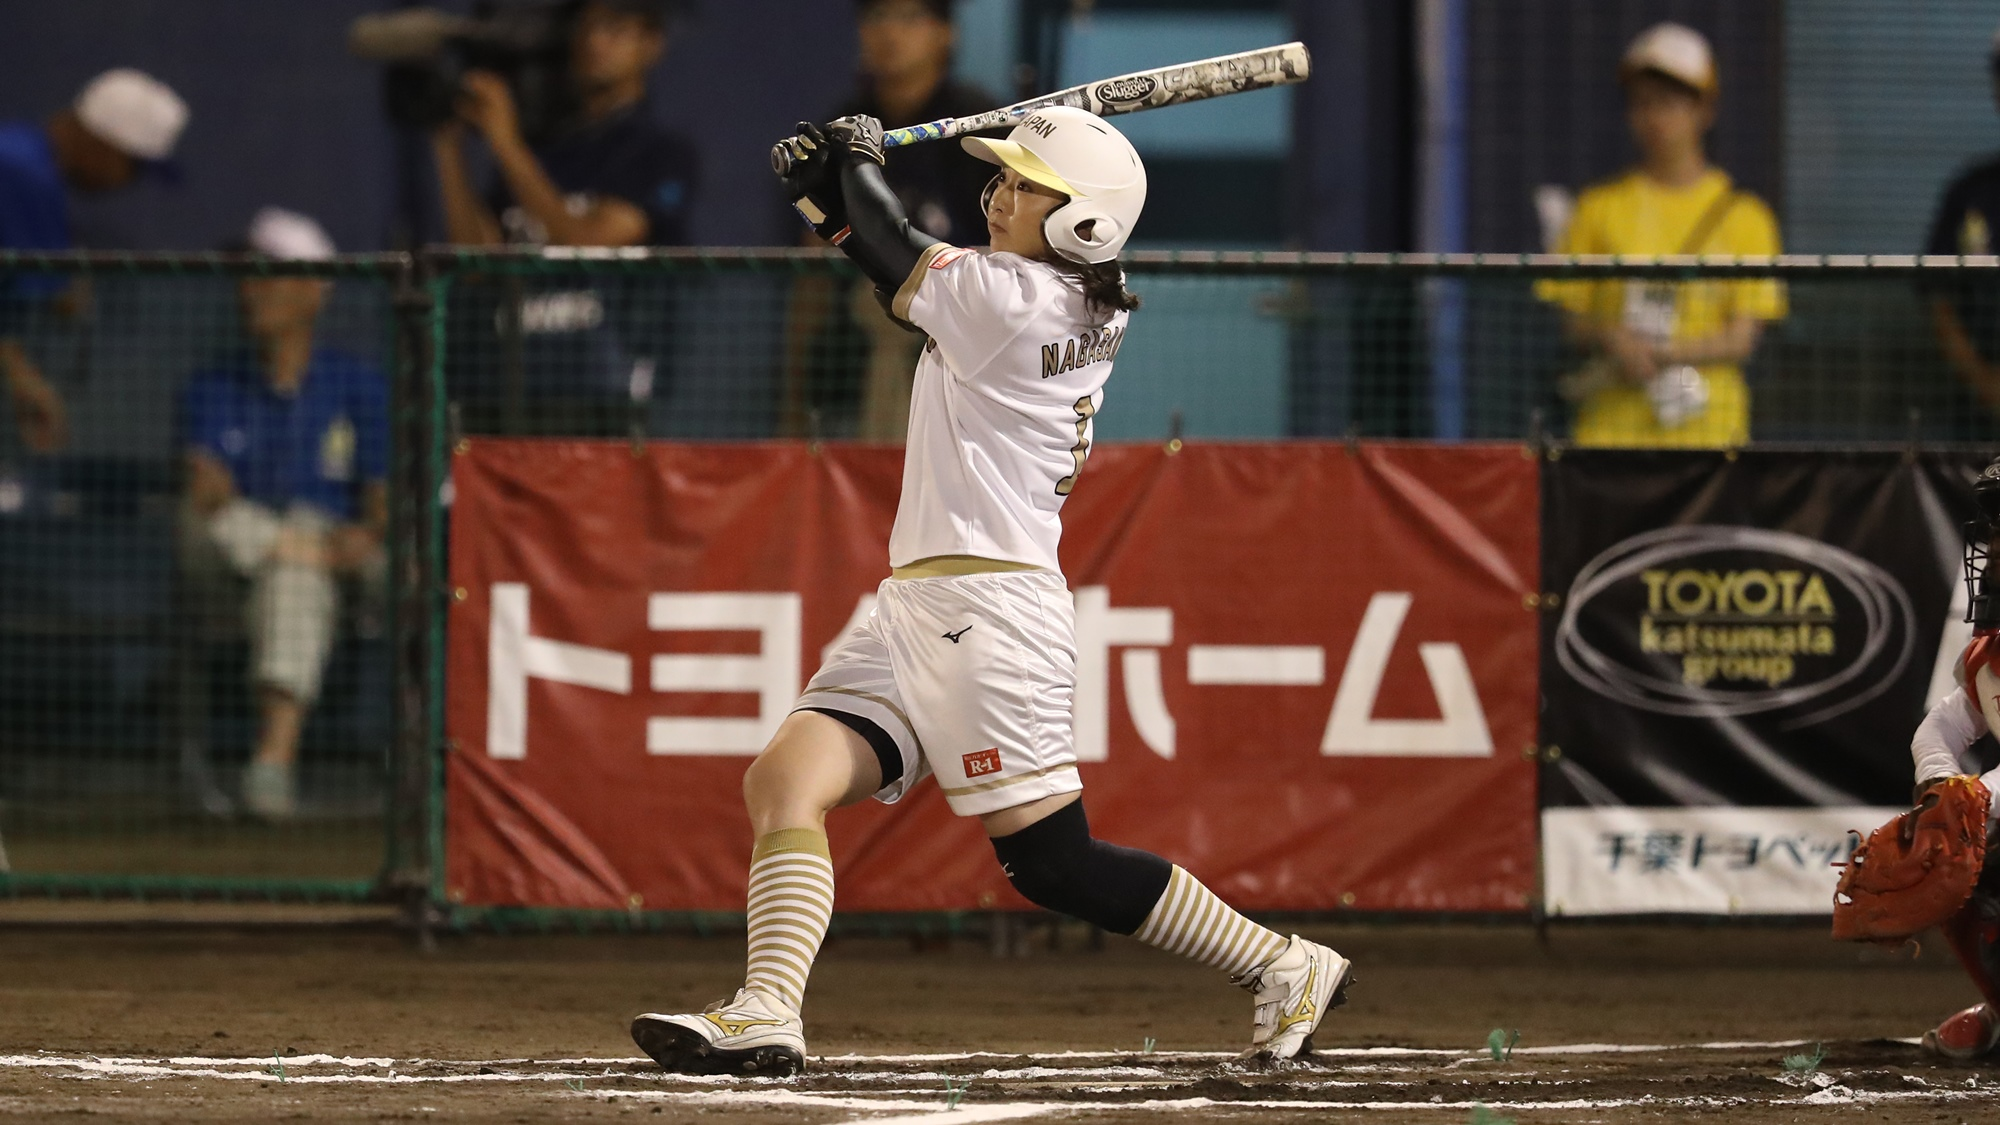 Nozomi Nagasaki homered twice in Japan's victory over Botswana